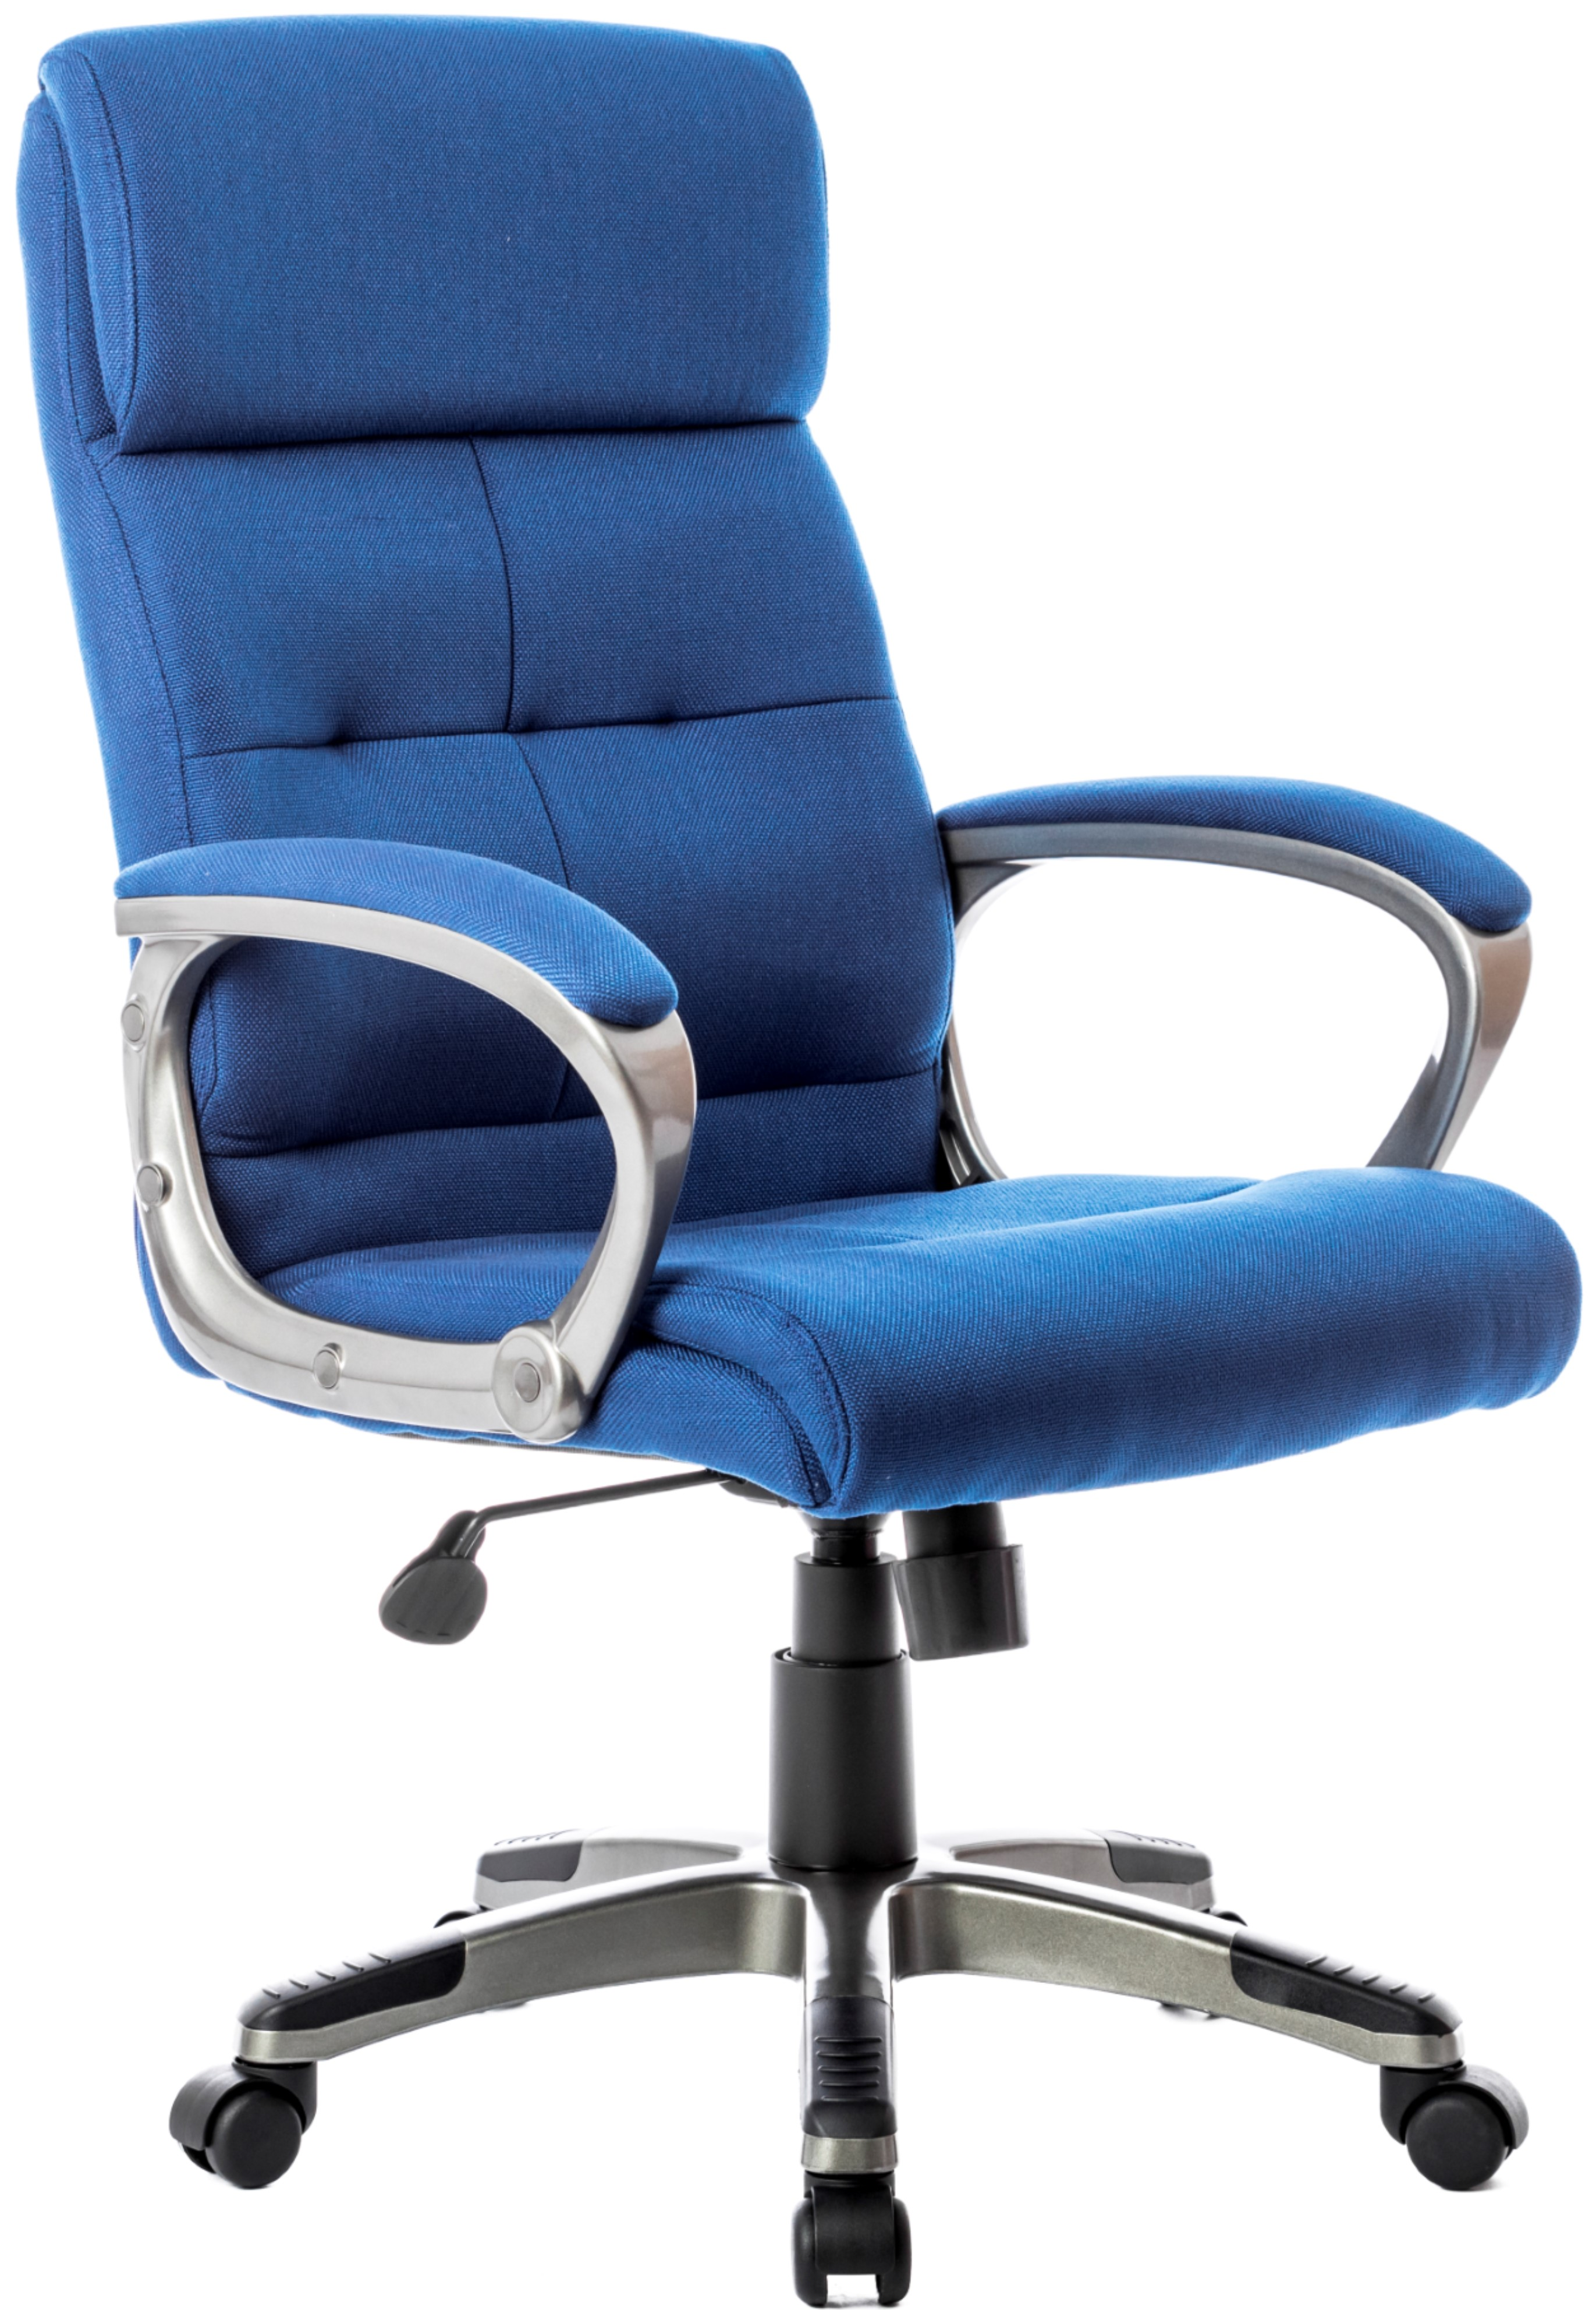 Executive Blue Office Chairs